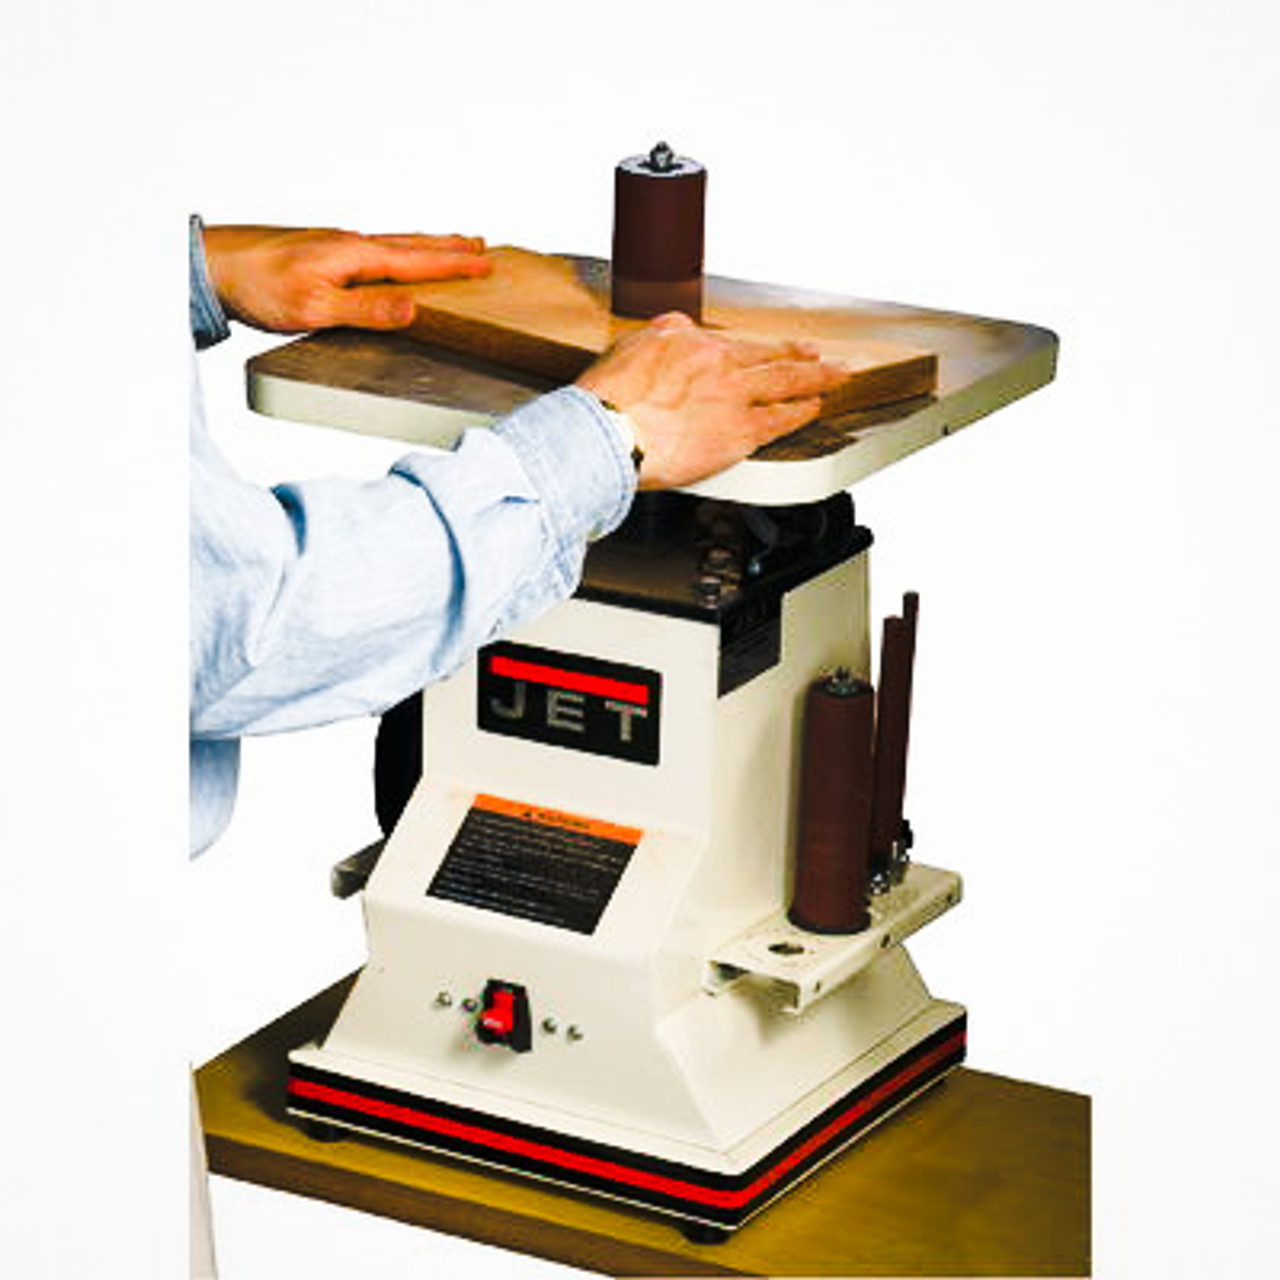 Jet JBOS-5 main spindle current machines